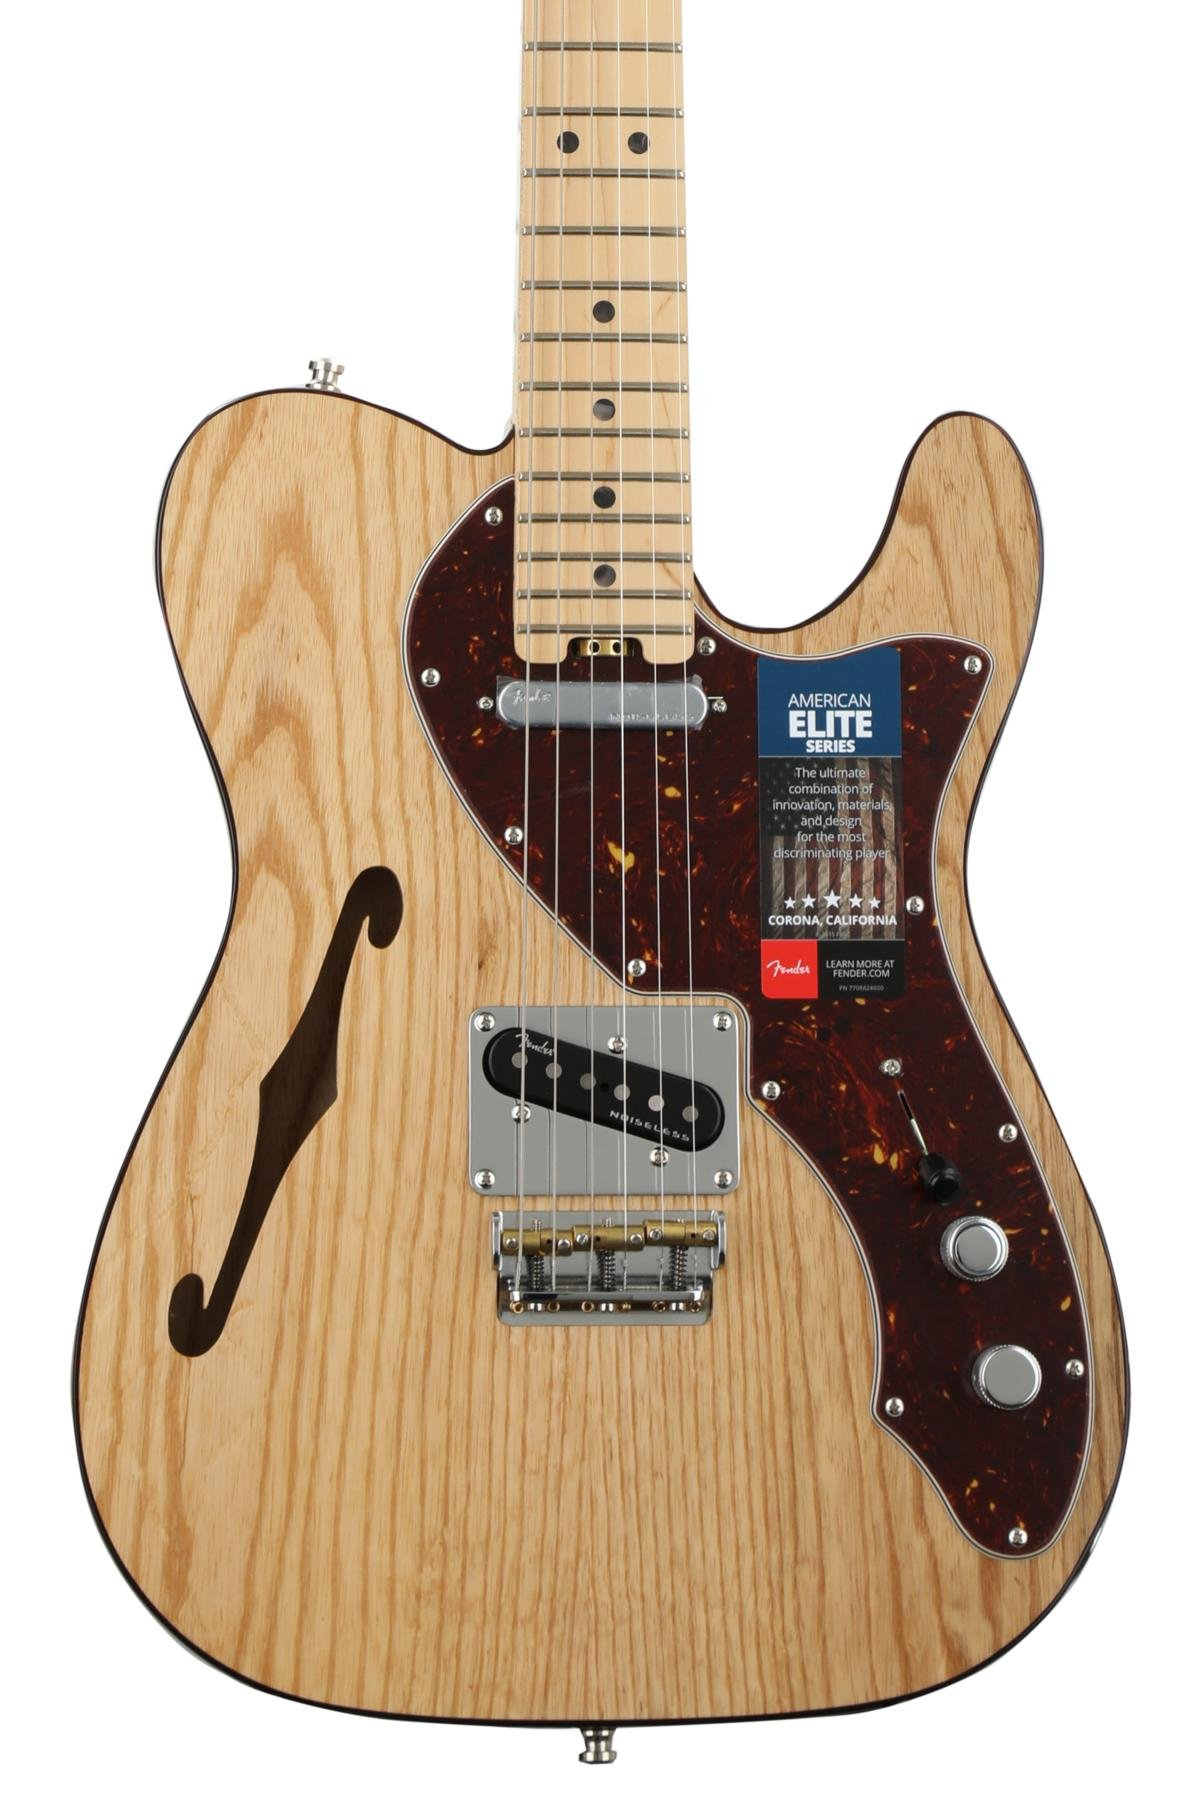 Fender American Elite Telecaster Thinline Natural W Maple Tele 4 Way Switch Problems Fingerboard Image 1